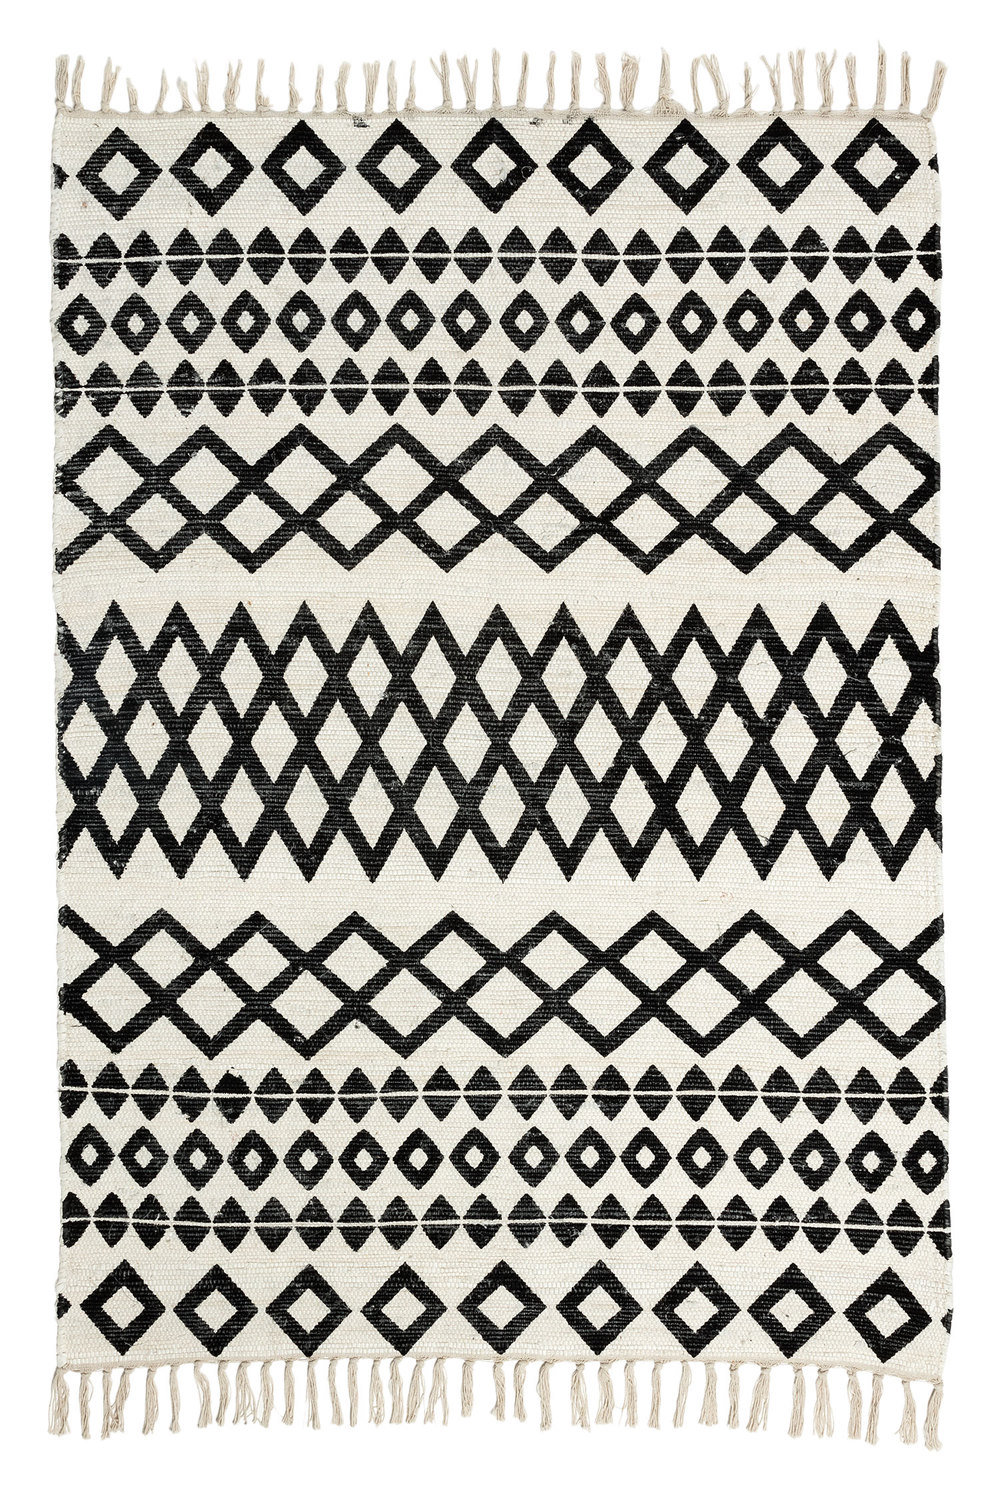 rugs home the images autumn living white rug bedroom finding pinterest aztec room plaid rugsusa boho perfect makeovers usa for cozy black chic best and on makeover